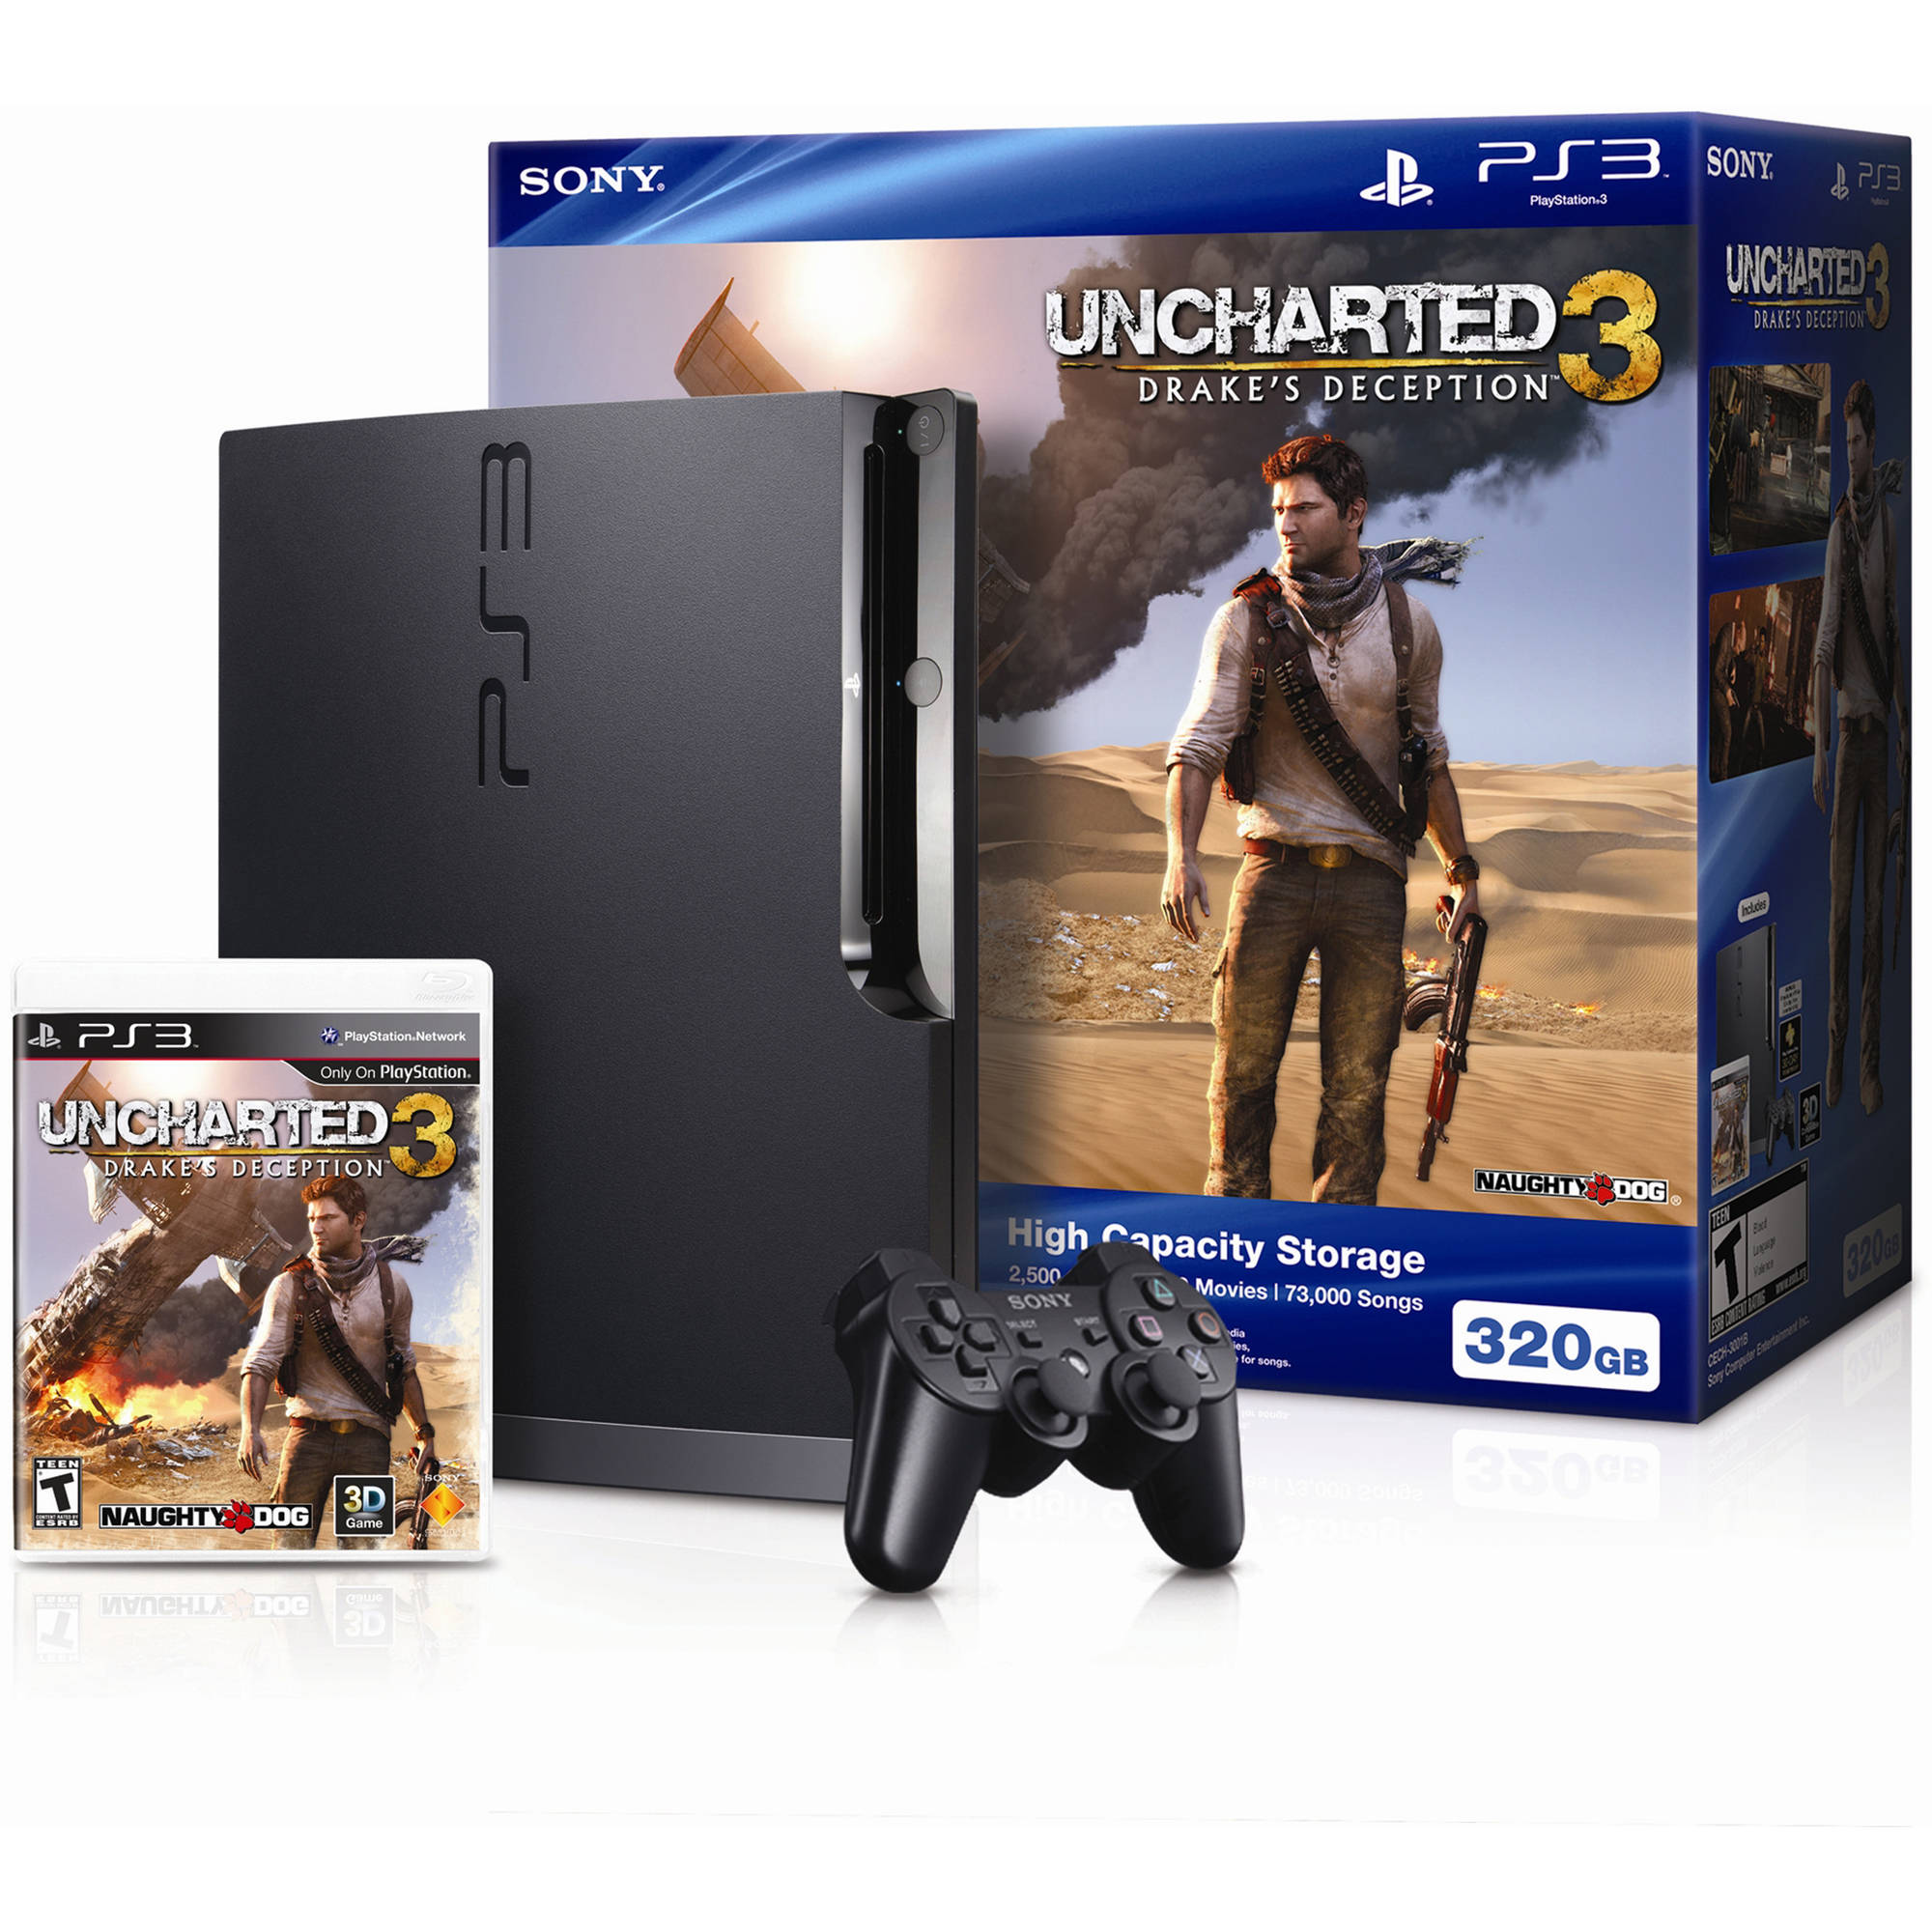 PlayStation 3 320GB Uncharted 3 Bundle (PS3)